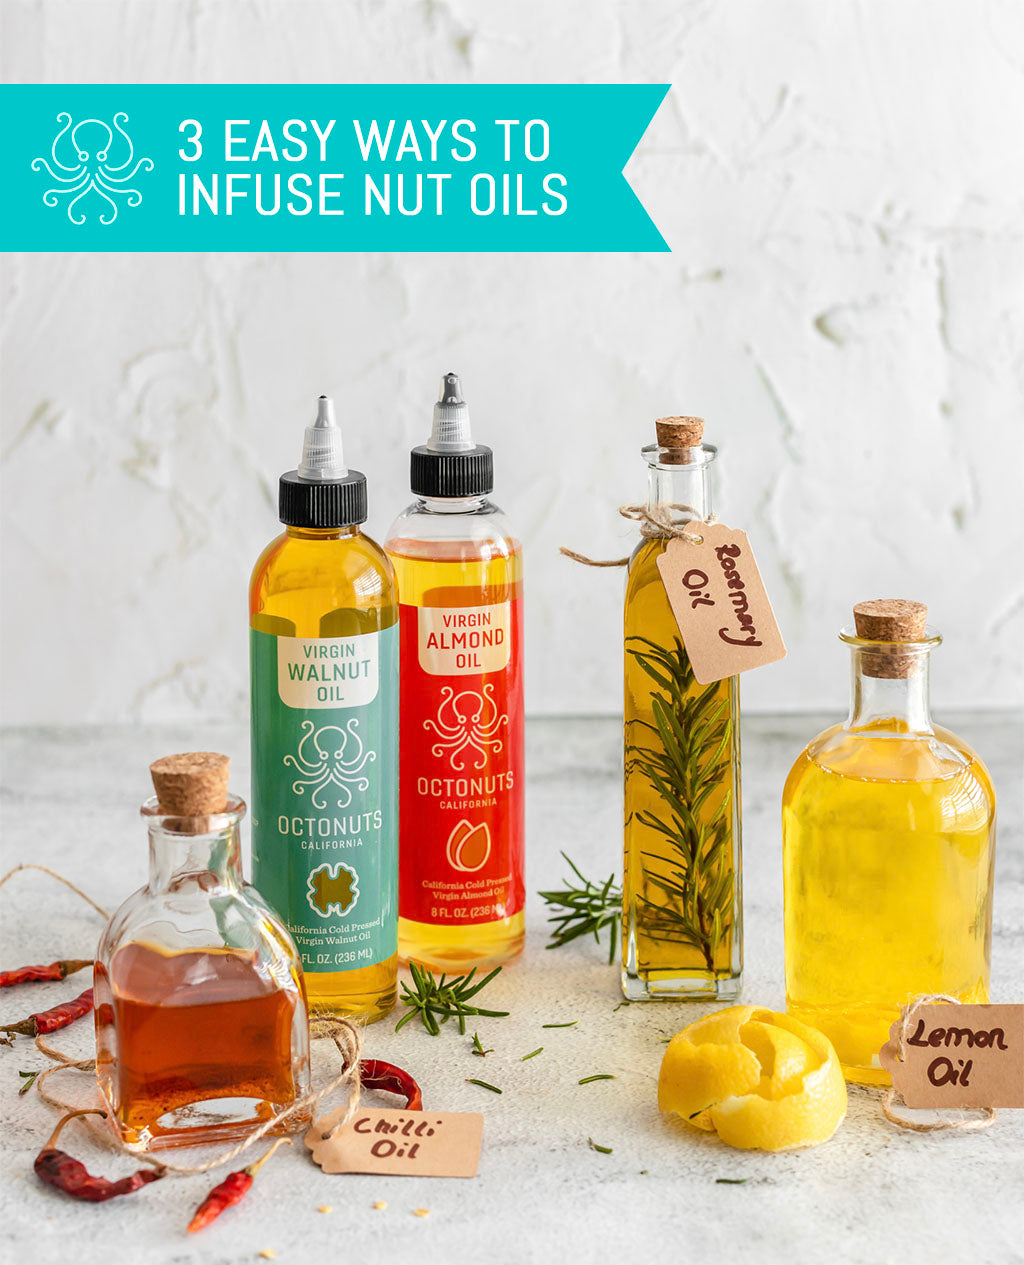 3 Easy Ways to Infuse Nut Oils